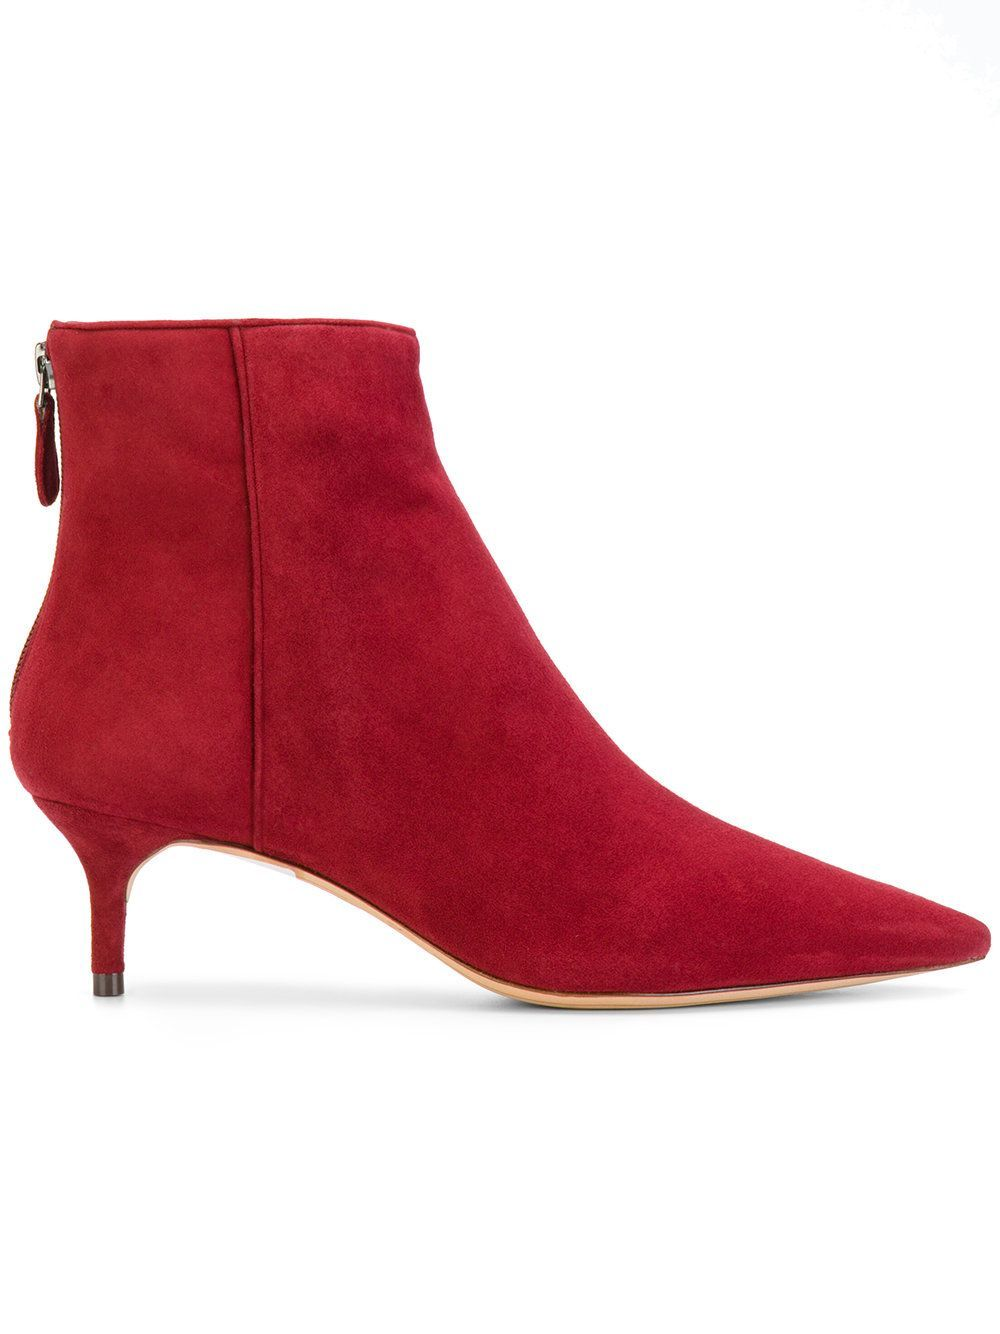 Red Patent Finish Palma Kitten Heel Boots By Acne Studios Kitten Heel Boots Boots Kitten Heel Shoes